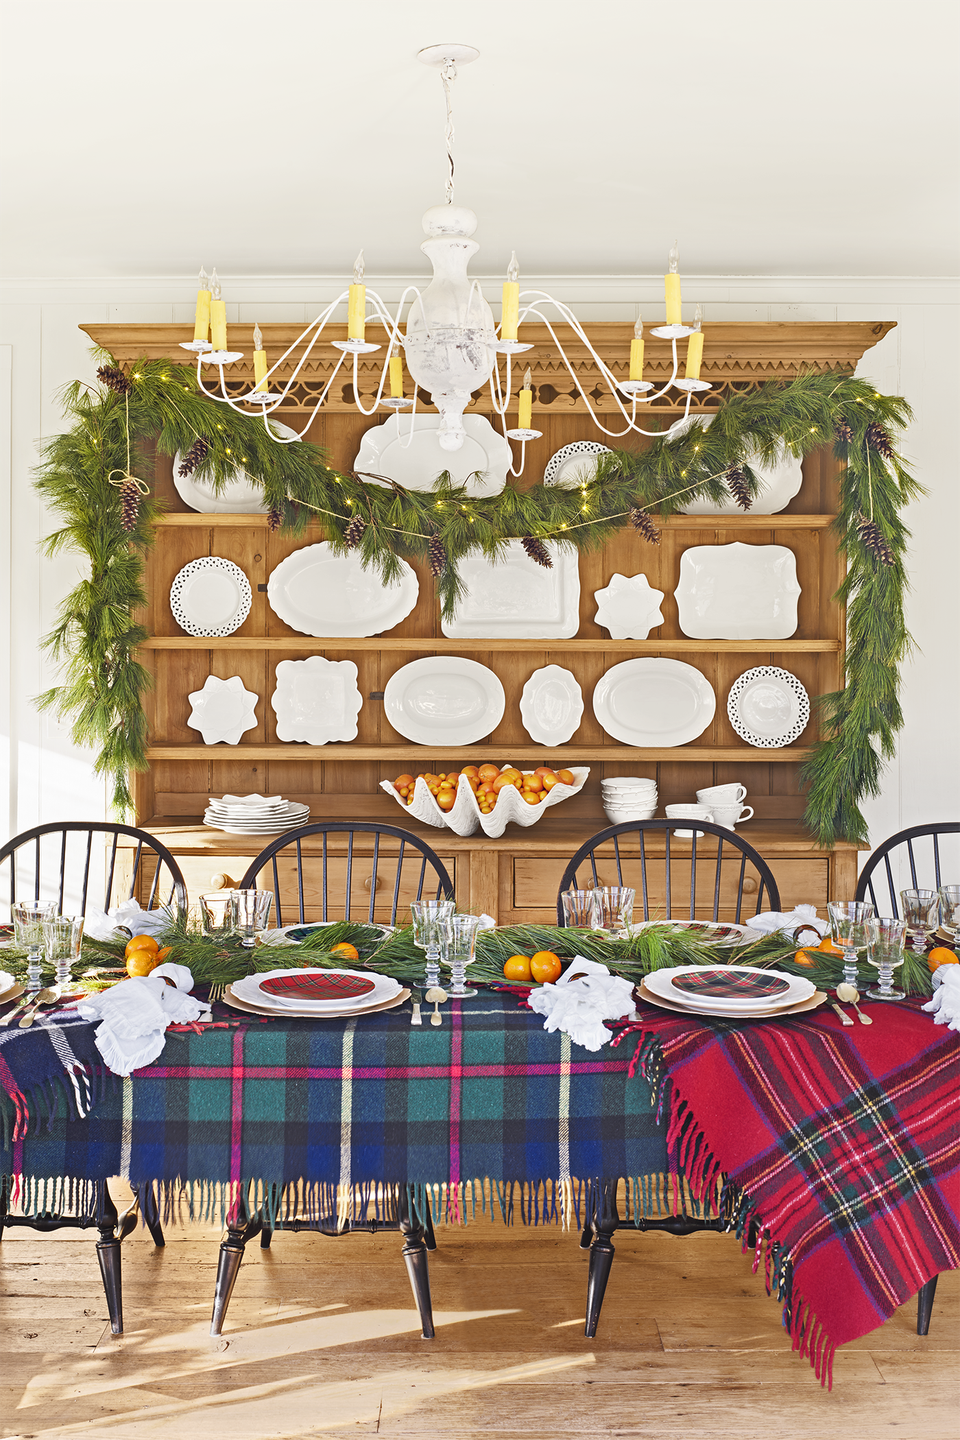 "<p><a href=""https://www.countryliving.com/home-design/house-tours/g4928/christmas-in-connecticut/"" rel=""nofollow noopener"" target=""_blank"" data-ylk=""slk:This Cape Cod homeowner"" class=""link rapid-noclick-resp"">This Cape Cod homeowner</a> used complementing tartan patterns to dress up her dining table for the holidays. In addition to plaid blankets, layered here as tablecloths, you can also mix in more pattern with dishware and napkins. </p><p><a class=""link rapid-noclick-resp"" href=""https://go.redirectingat.com?id=74968X1596630&url=https%3A%2F%2Fwww.wayfair.com%2Fbed-bath%2Fsb1%2Fplaid-blankets-throws-c415002-a18804%7E75894.html&sref=https%3A%2F%2Fwww.countryliving.com%2Fdiy-crafts%2Fg644%2Fchristmas-tables-1208%2F"" rel=""nofollow noopener"" target=""_blank"" data-ylk=""slk:SHOP PLAID THROWS"">SHOP PLAID THROWS</a><br></p>"